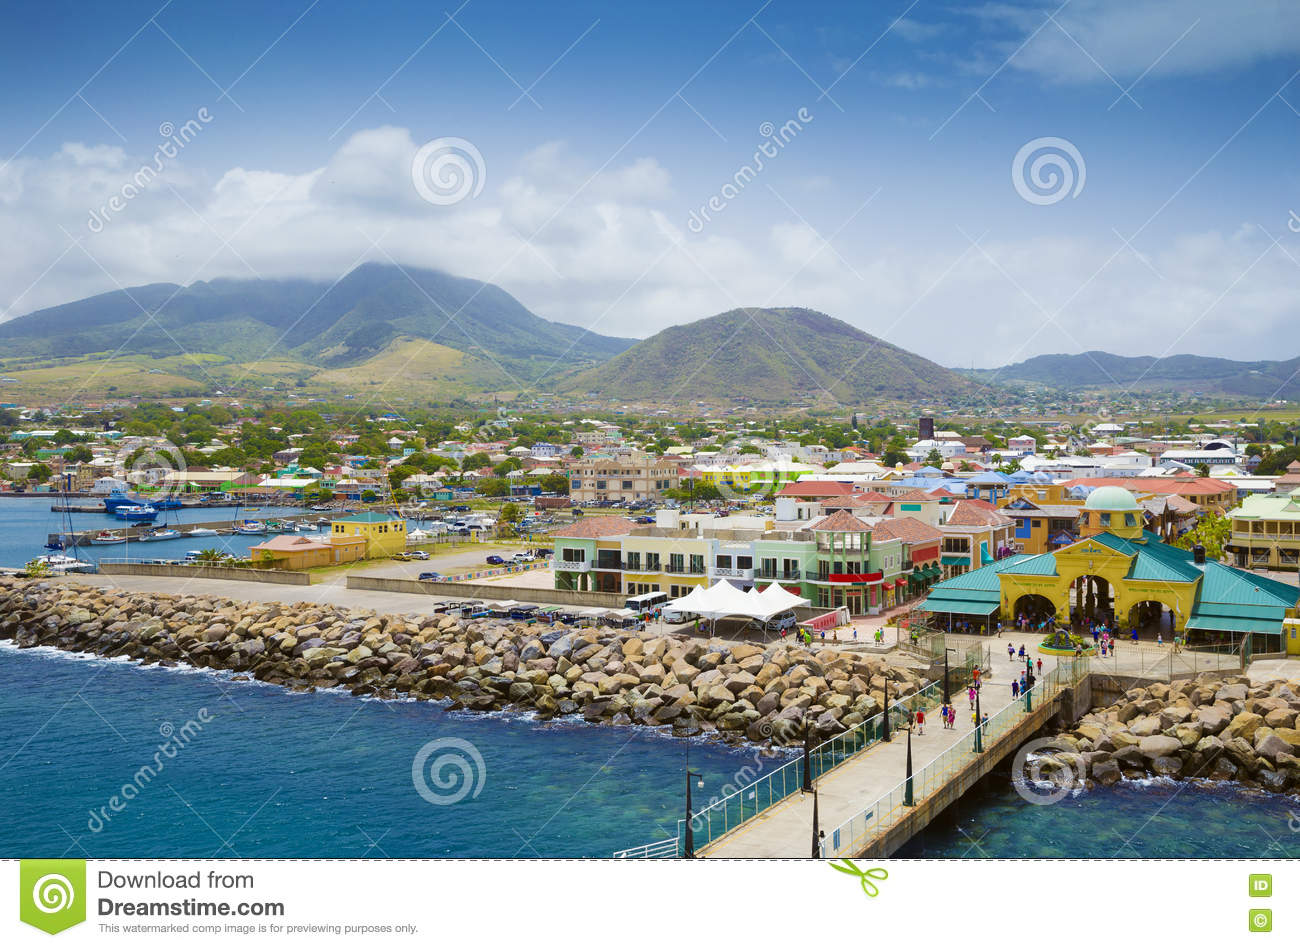 how to get to nevis from st kitts